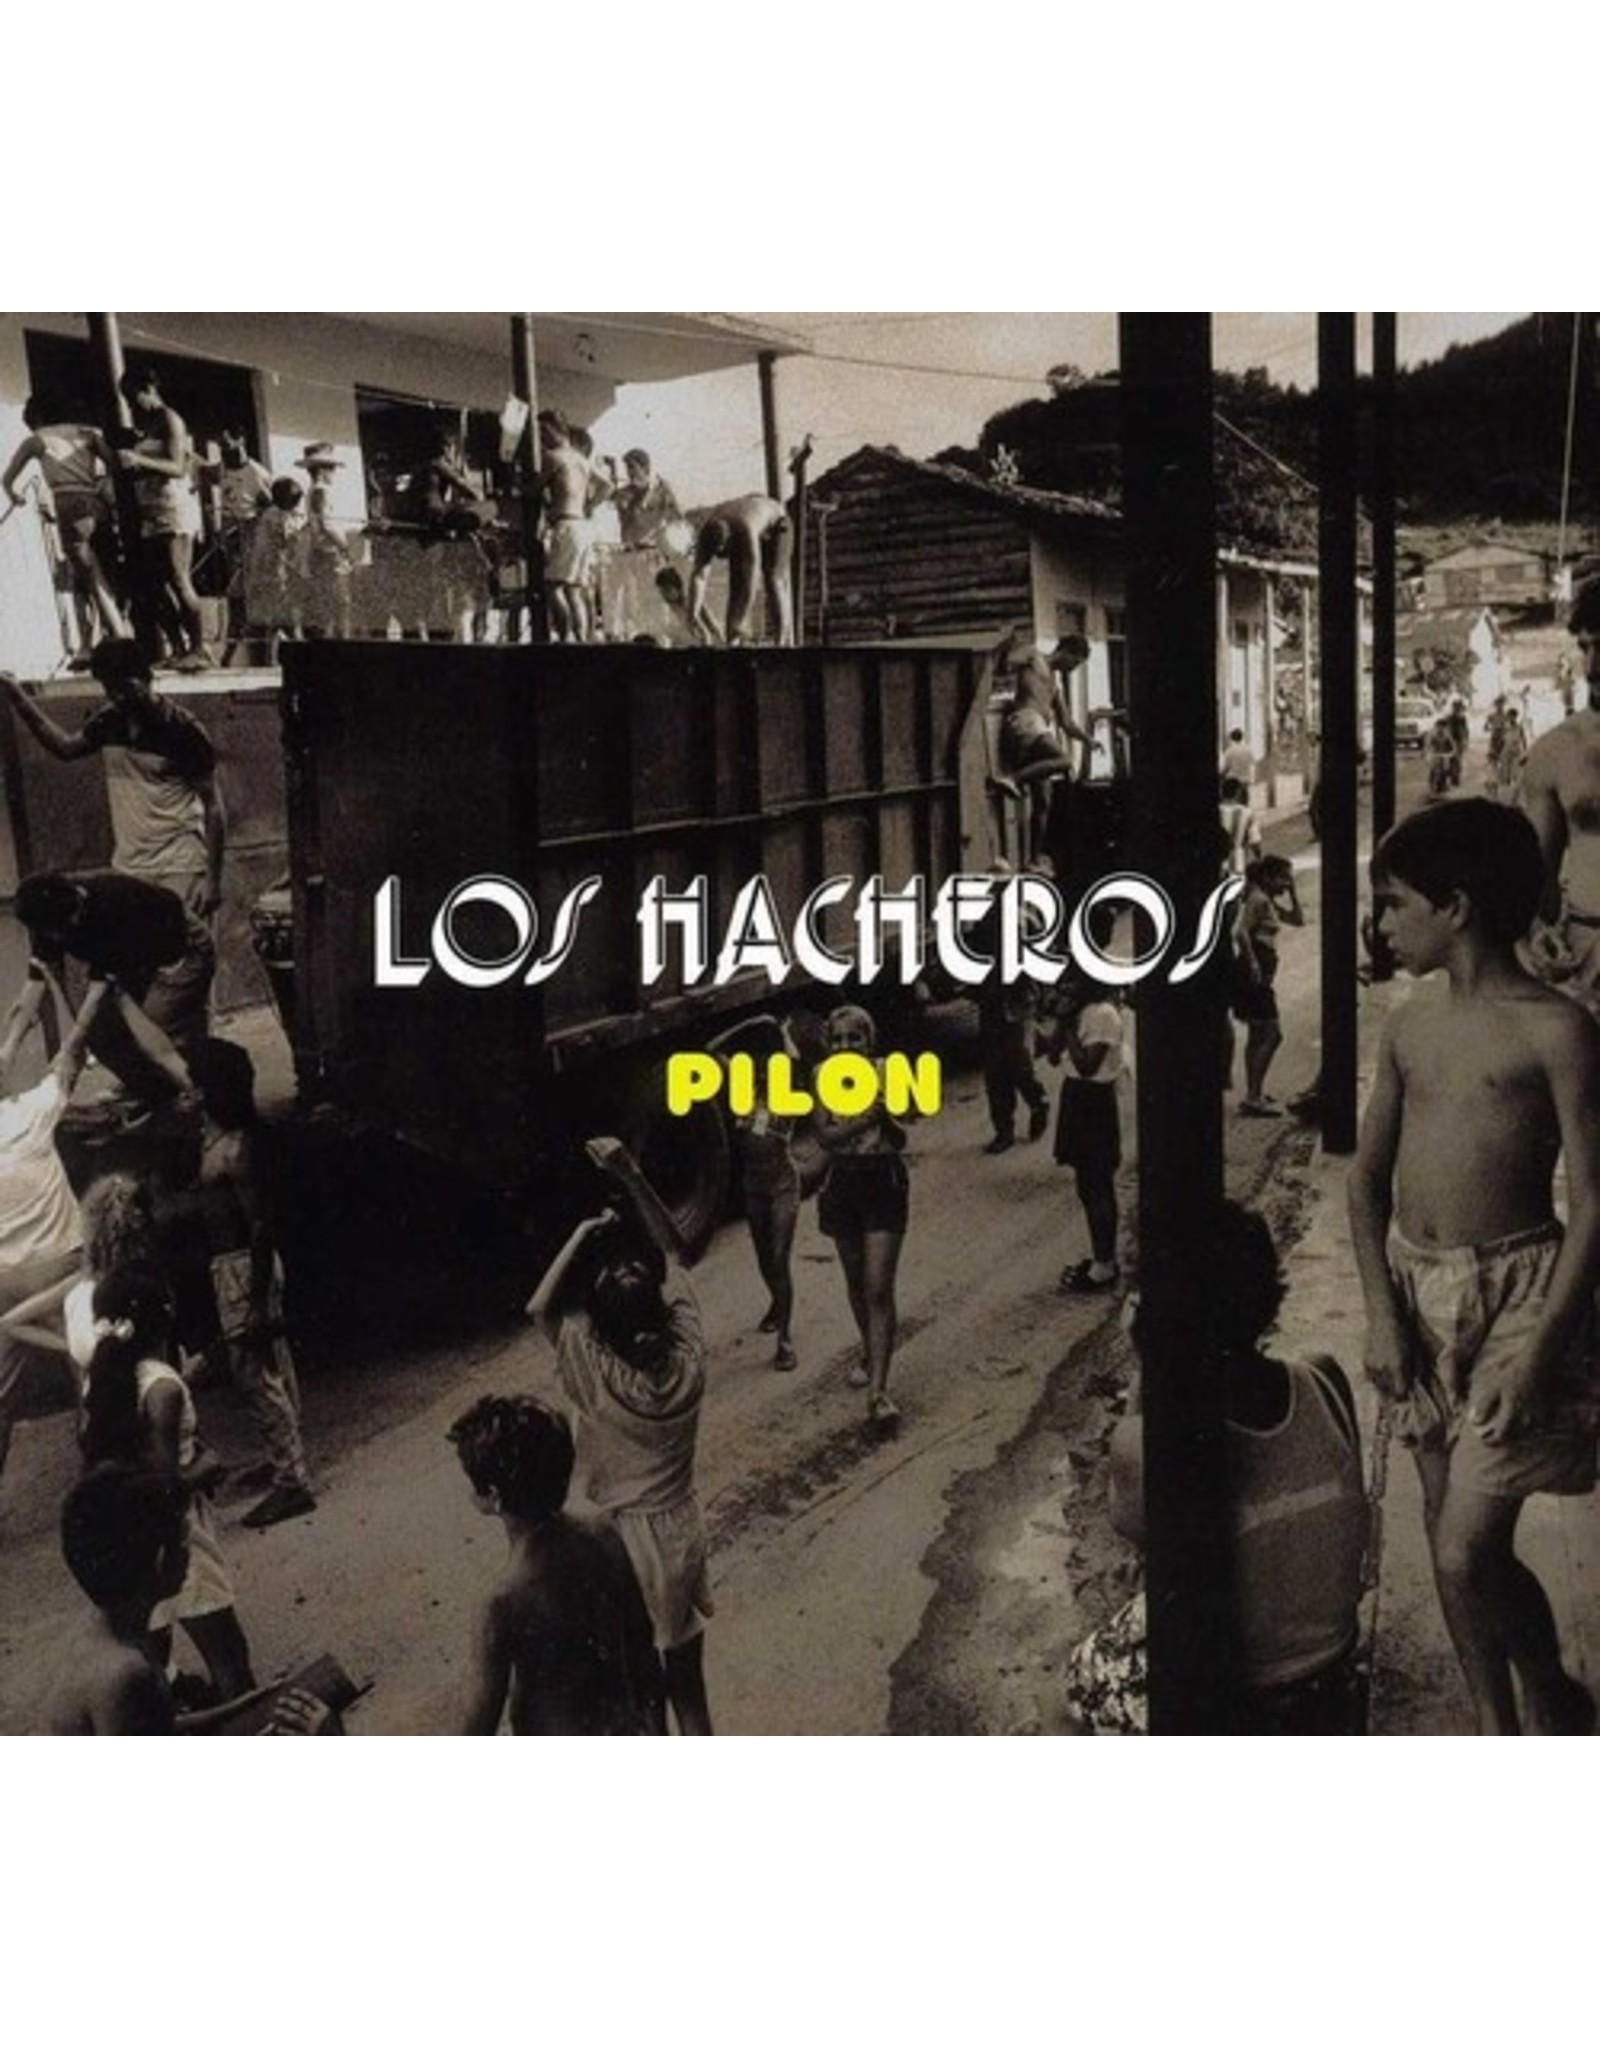 New Vinyl Los Hacheros - Pilon LP